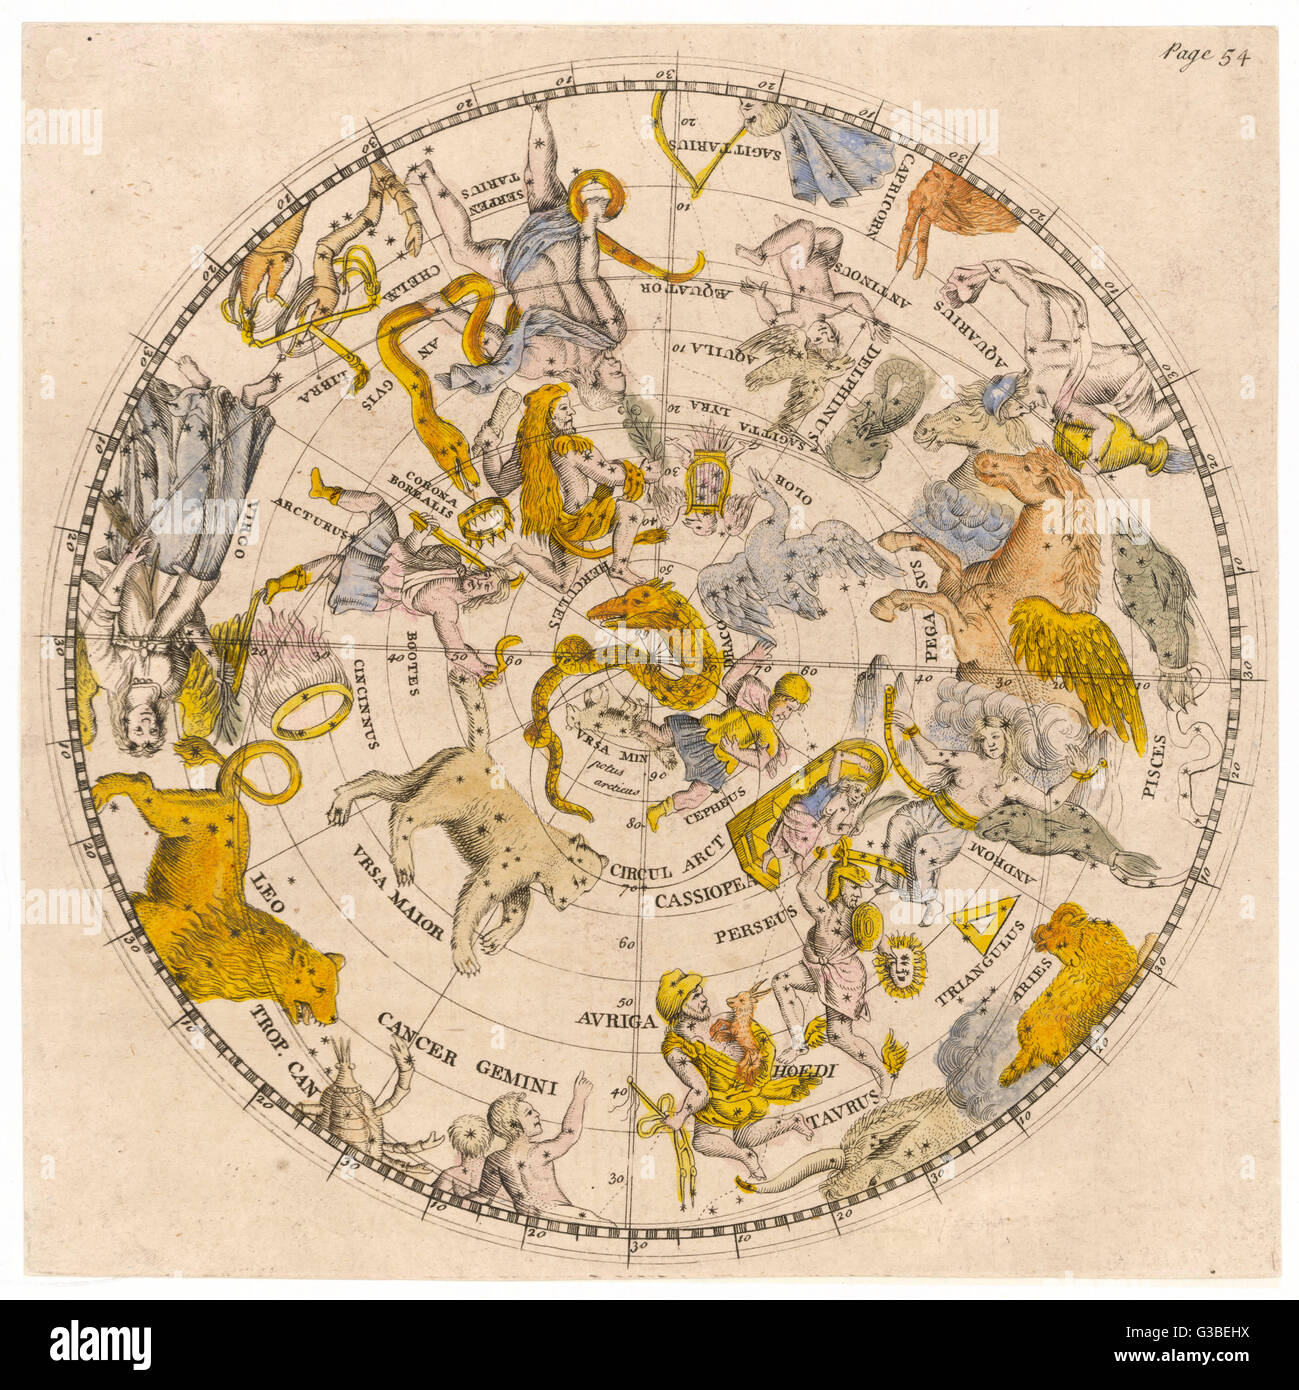 Sky chart showing the signs of  the Zodiac and other celestial  features        Date: 1805 - Stock Image